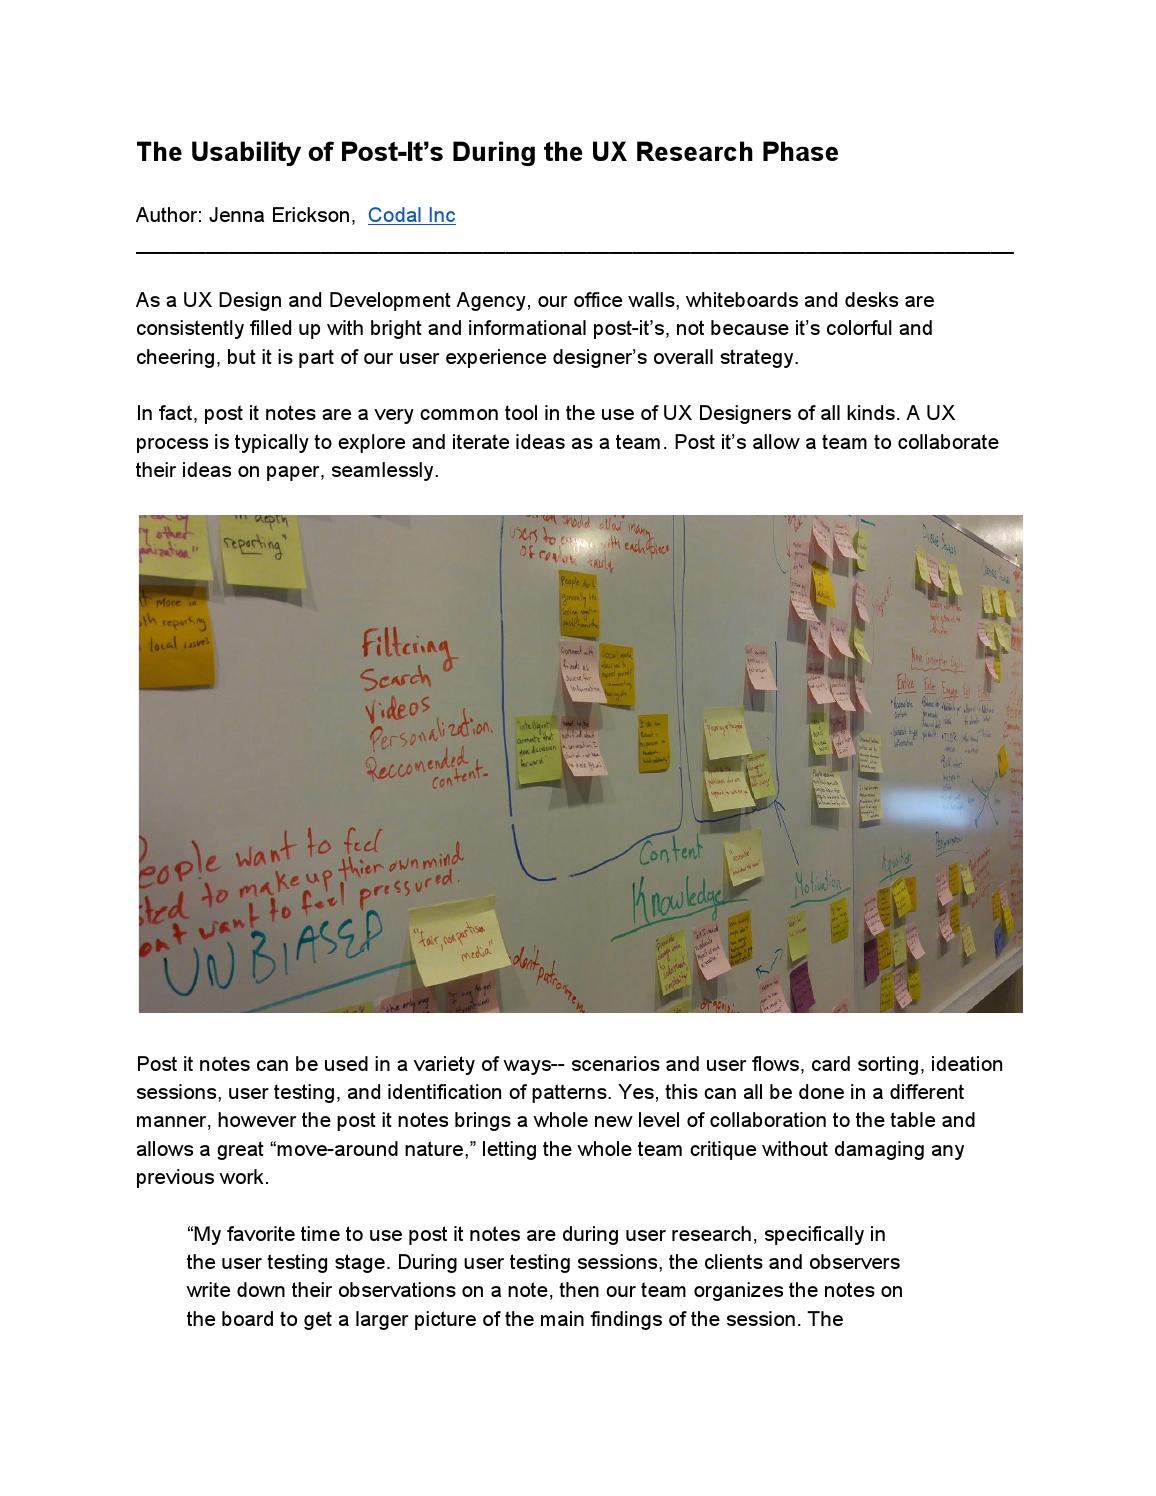 The Usability Of Post Its During Ux Research Phase By Codal Inc Process Flow Diagram Issuu